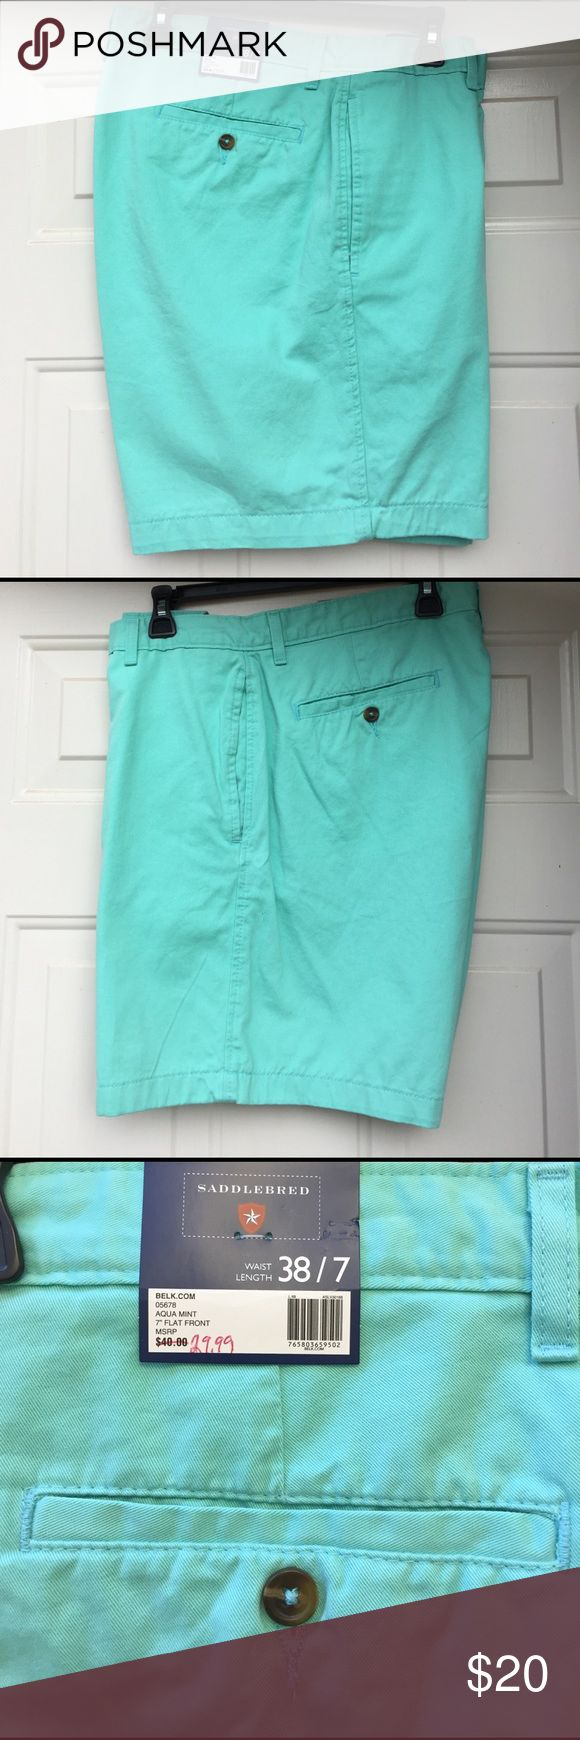 Men's Shorts 💚BRAND NEW💚 W/ Tags. Saddlebreed Shorts. Flat Front. 38x7, Aqua Mint, Two button pockets in back. Excellent Condition Just in time for Spring / Summer saddlebreed Shorts Flat Front